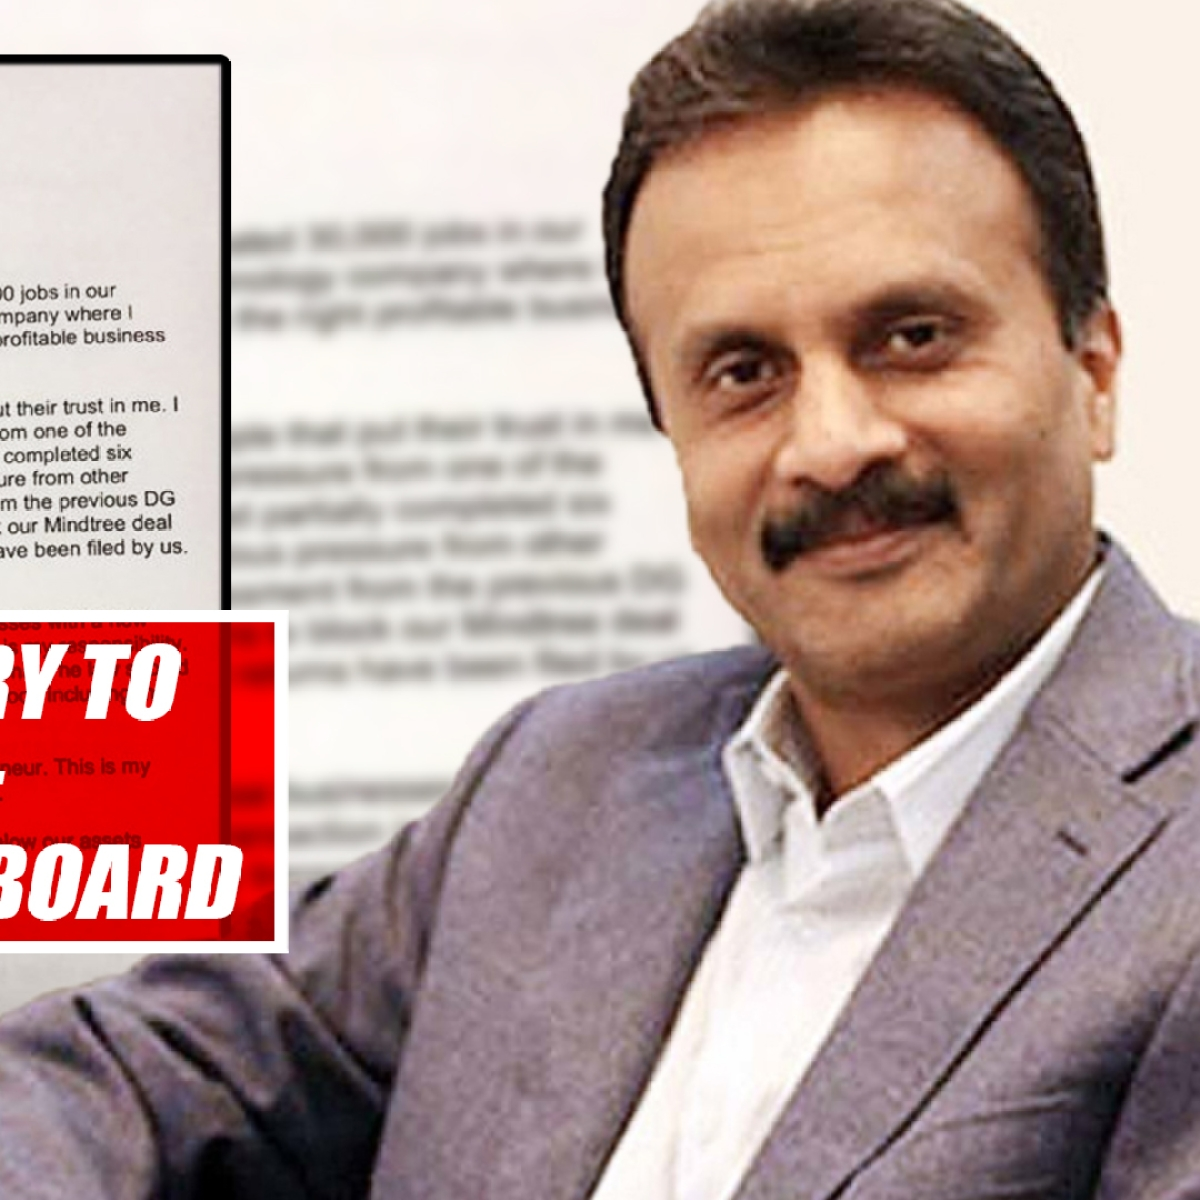 CCD owner VG Siddhartha's Letter To Board: I Gave It My All, Sorry To Let Down People